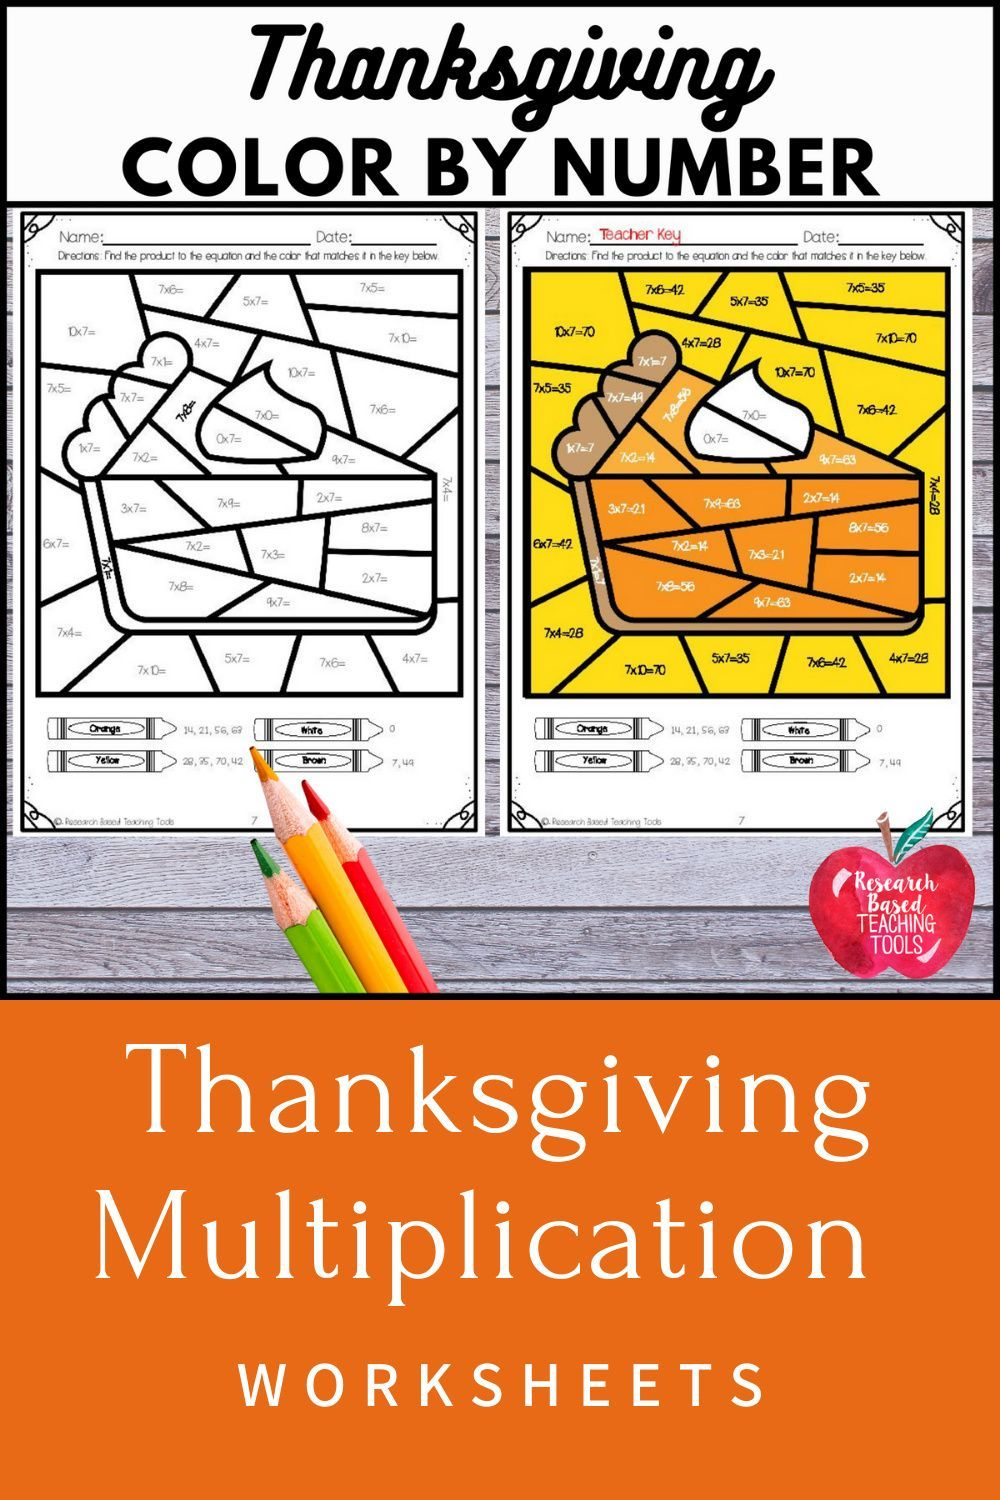 Thanksgiving Color By Number Multiplication Facts Elementary Math Lessons Multiplication Facts Thanksgiving Math [ 1500 x 1000 Pixel ]